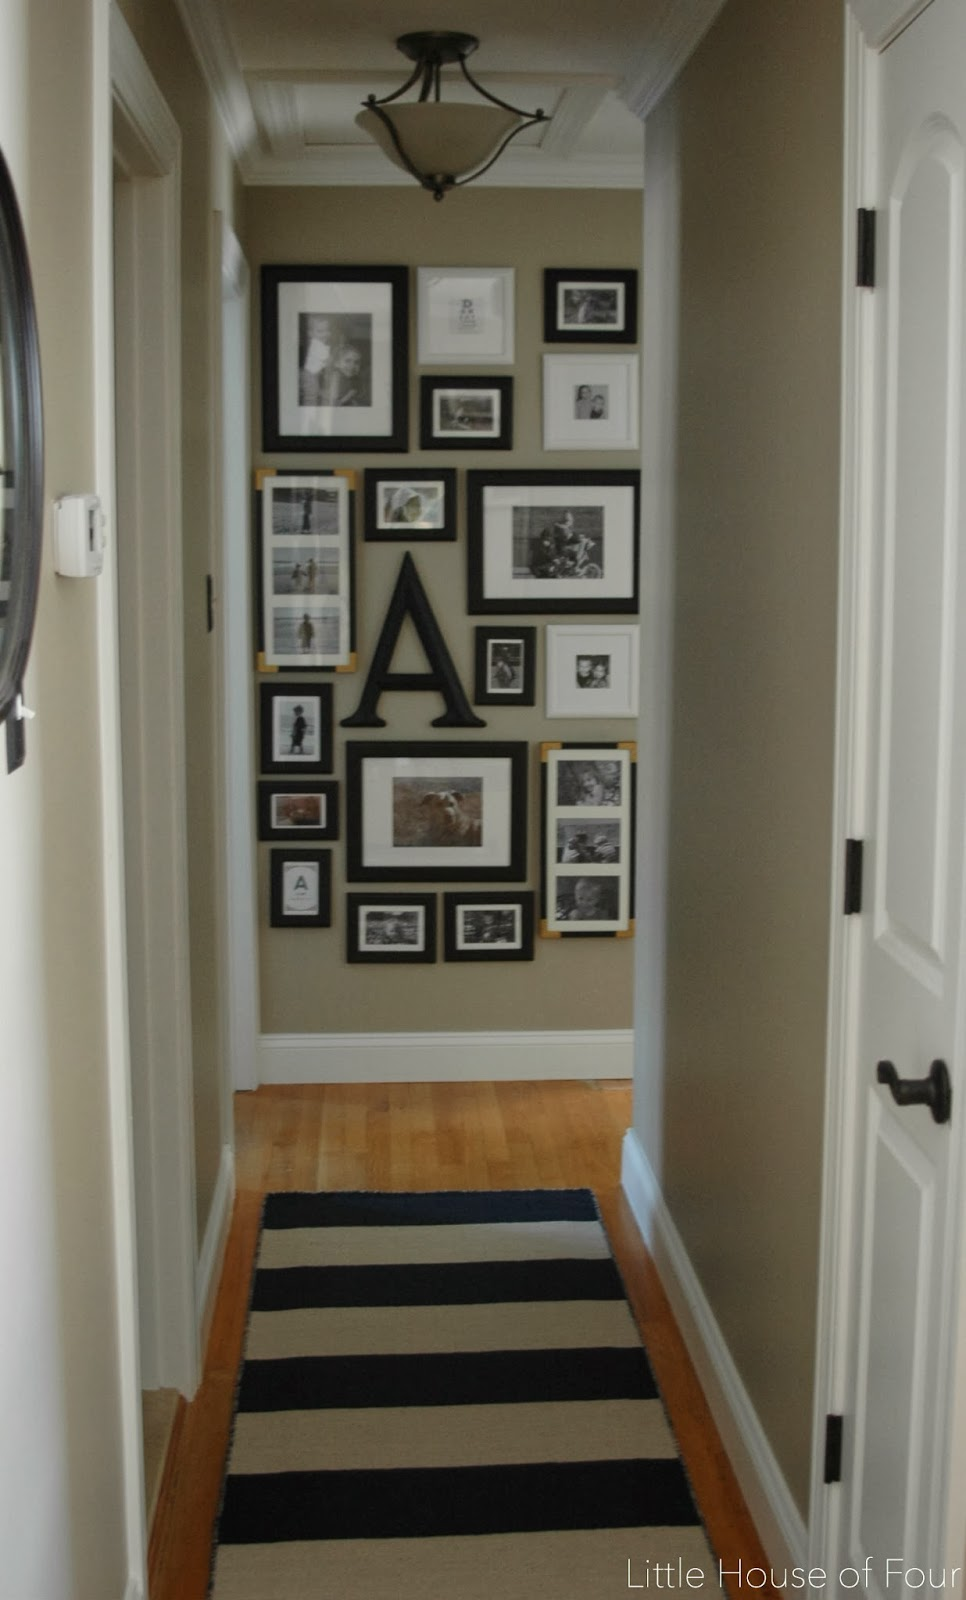 New Hallway Light update | Little House of Four - Creating ...